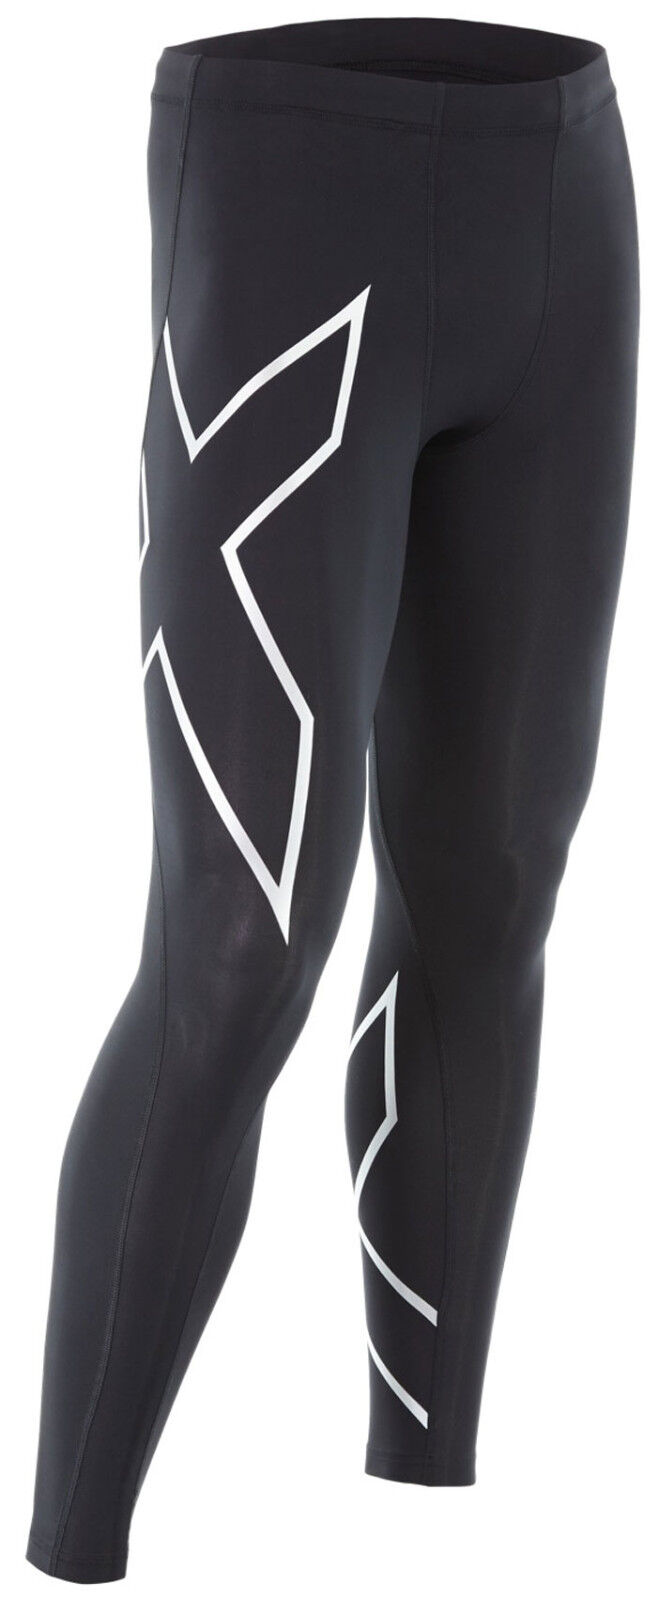 2XU Perform Long TR2 Compression Long Perform Tight Herren Schwarz/Silber MA3849b b50120